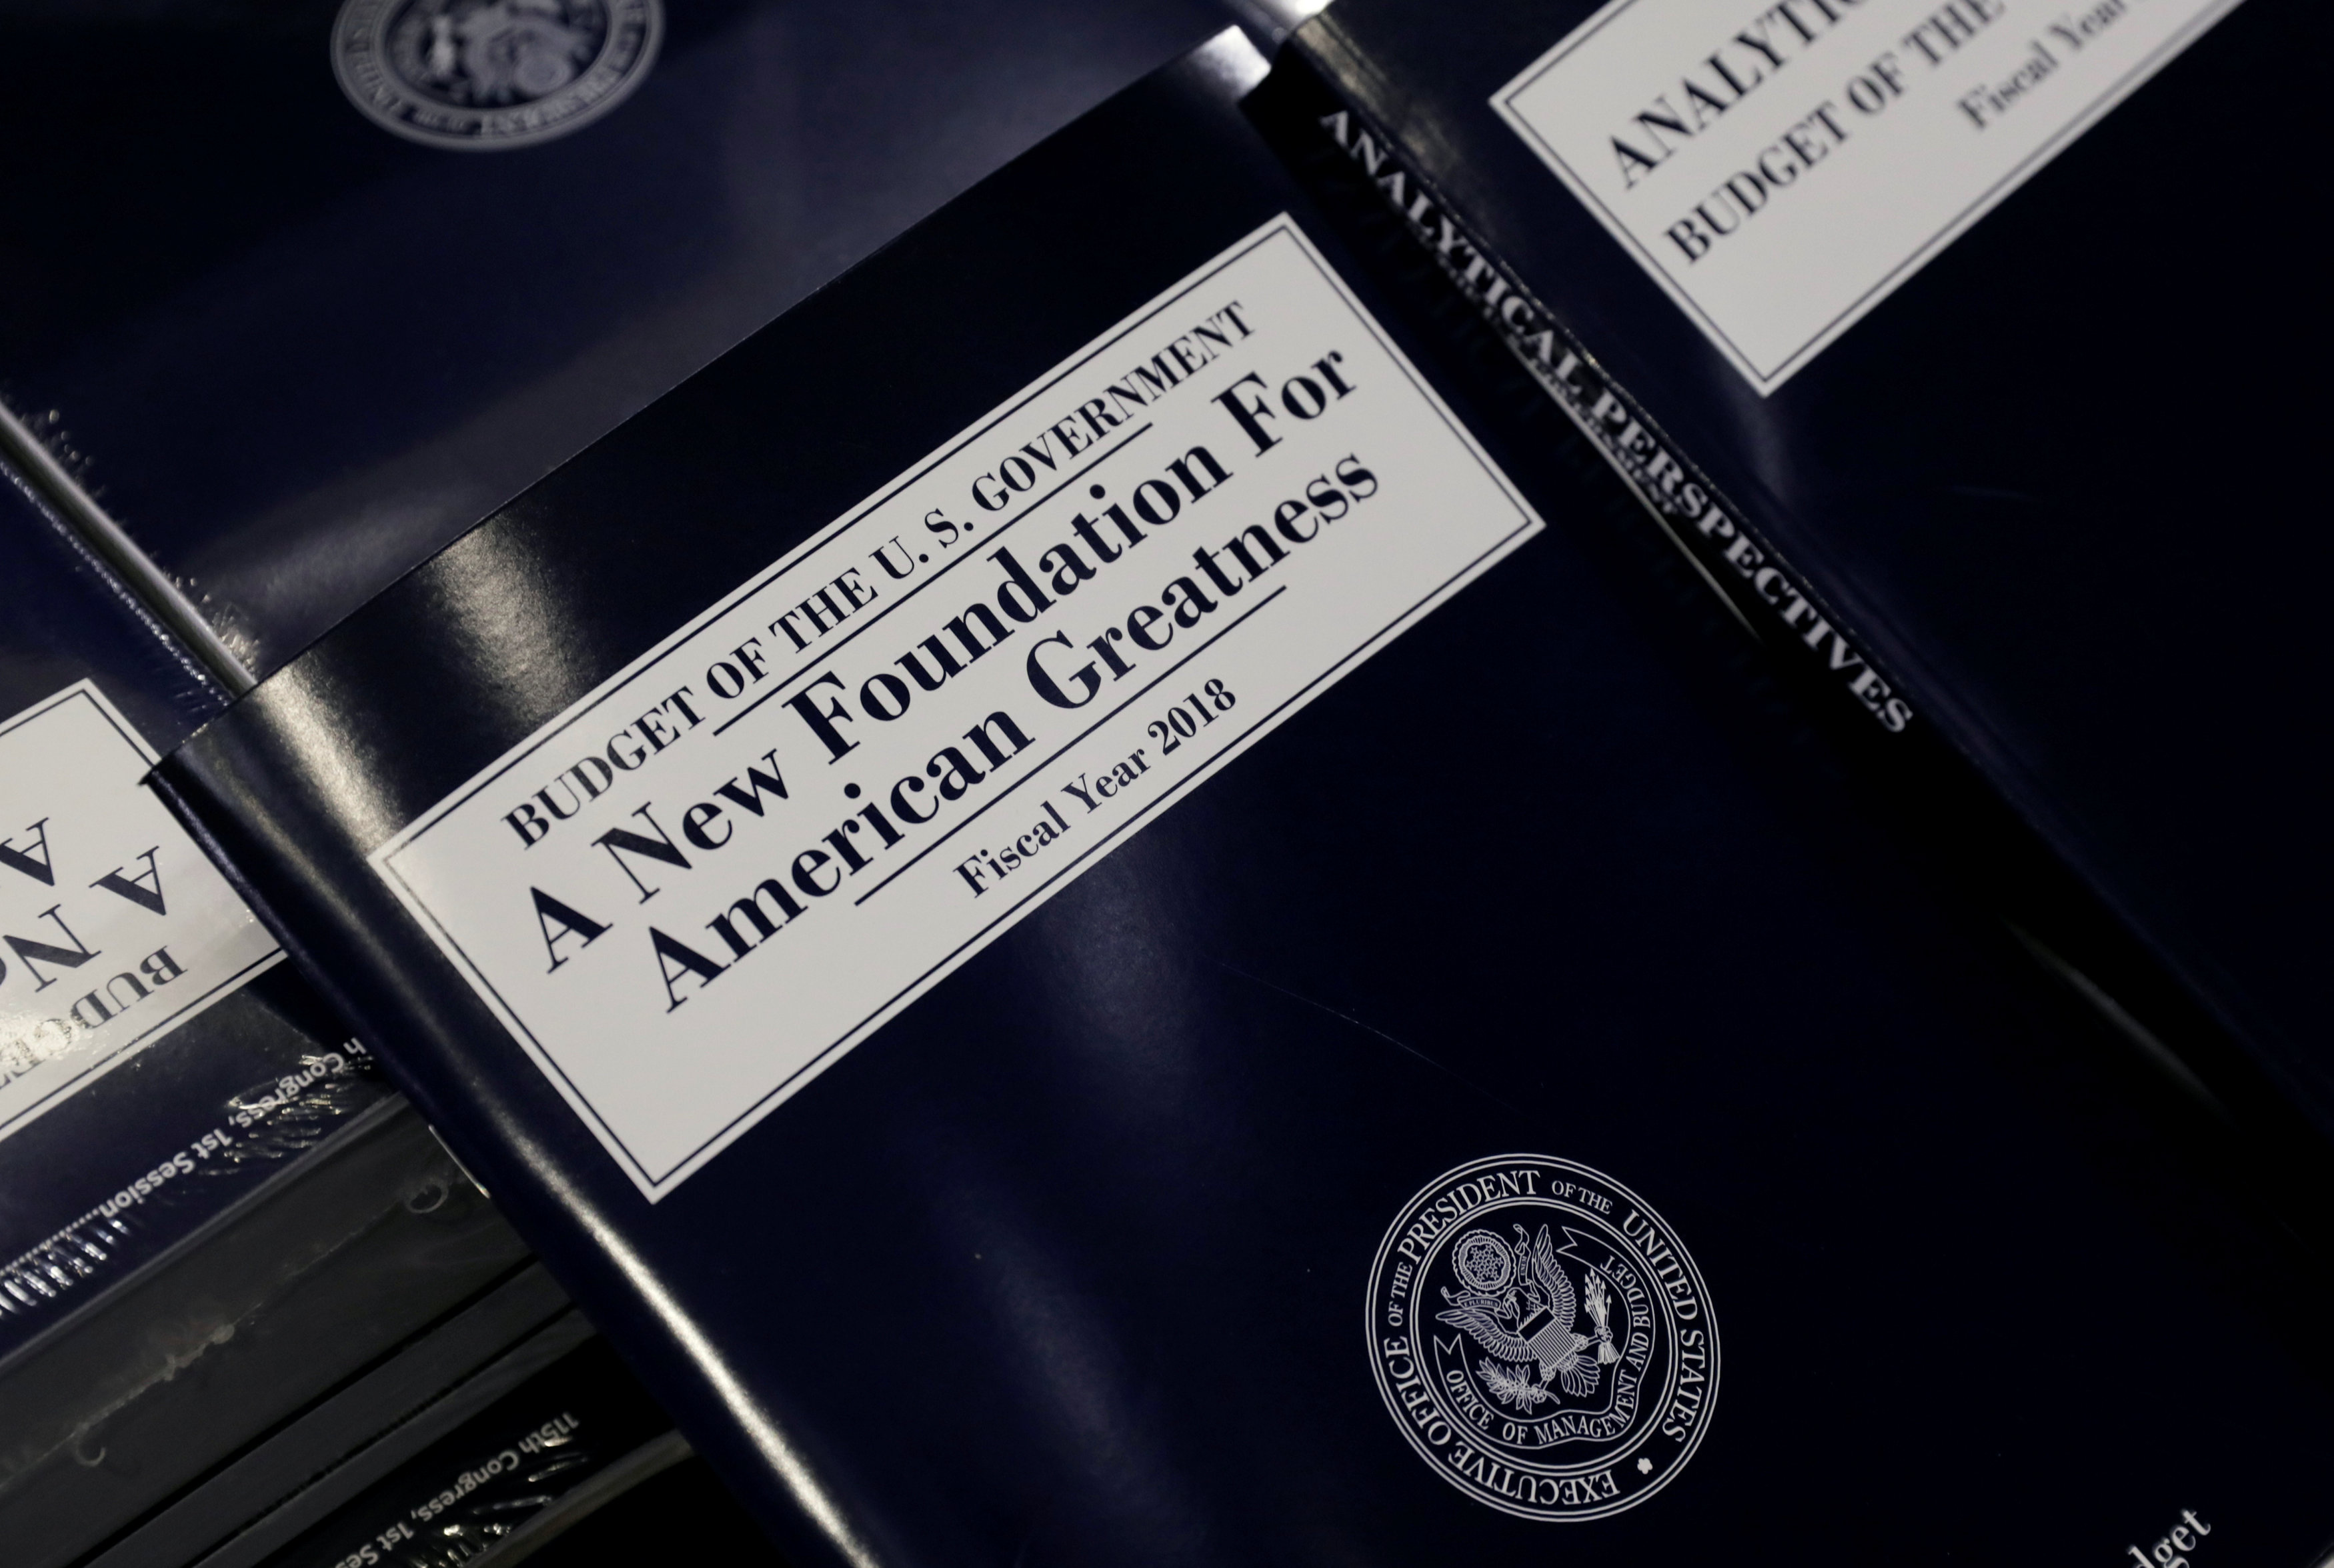 Trump Aims to Reduce $3.6 Trillion of Expenditure in Austere Budget